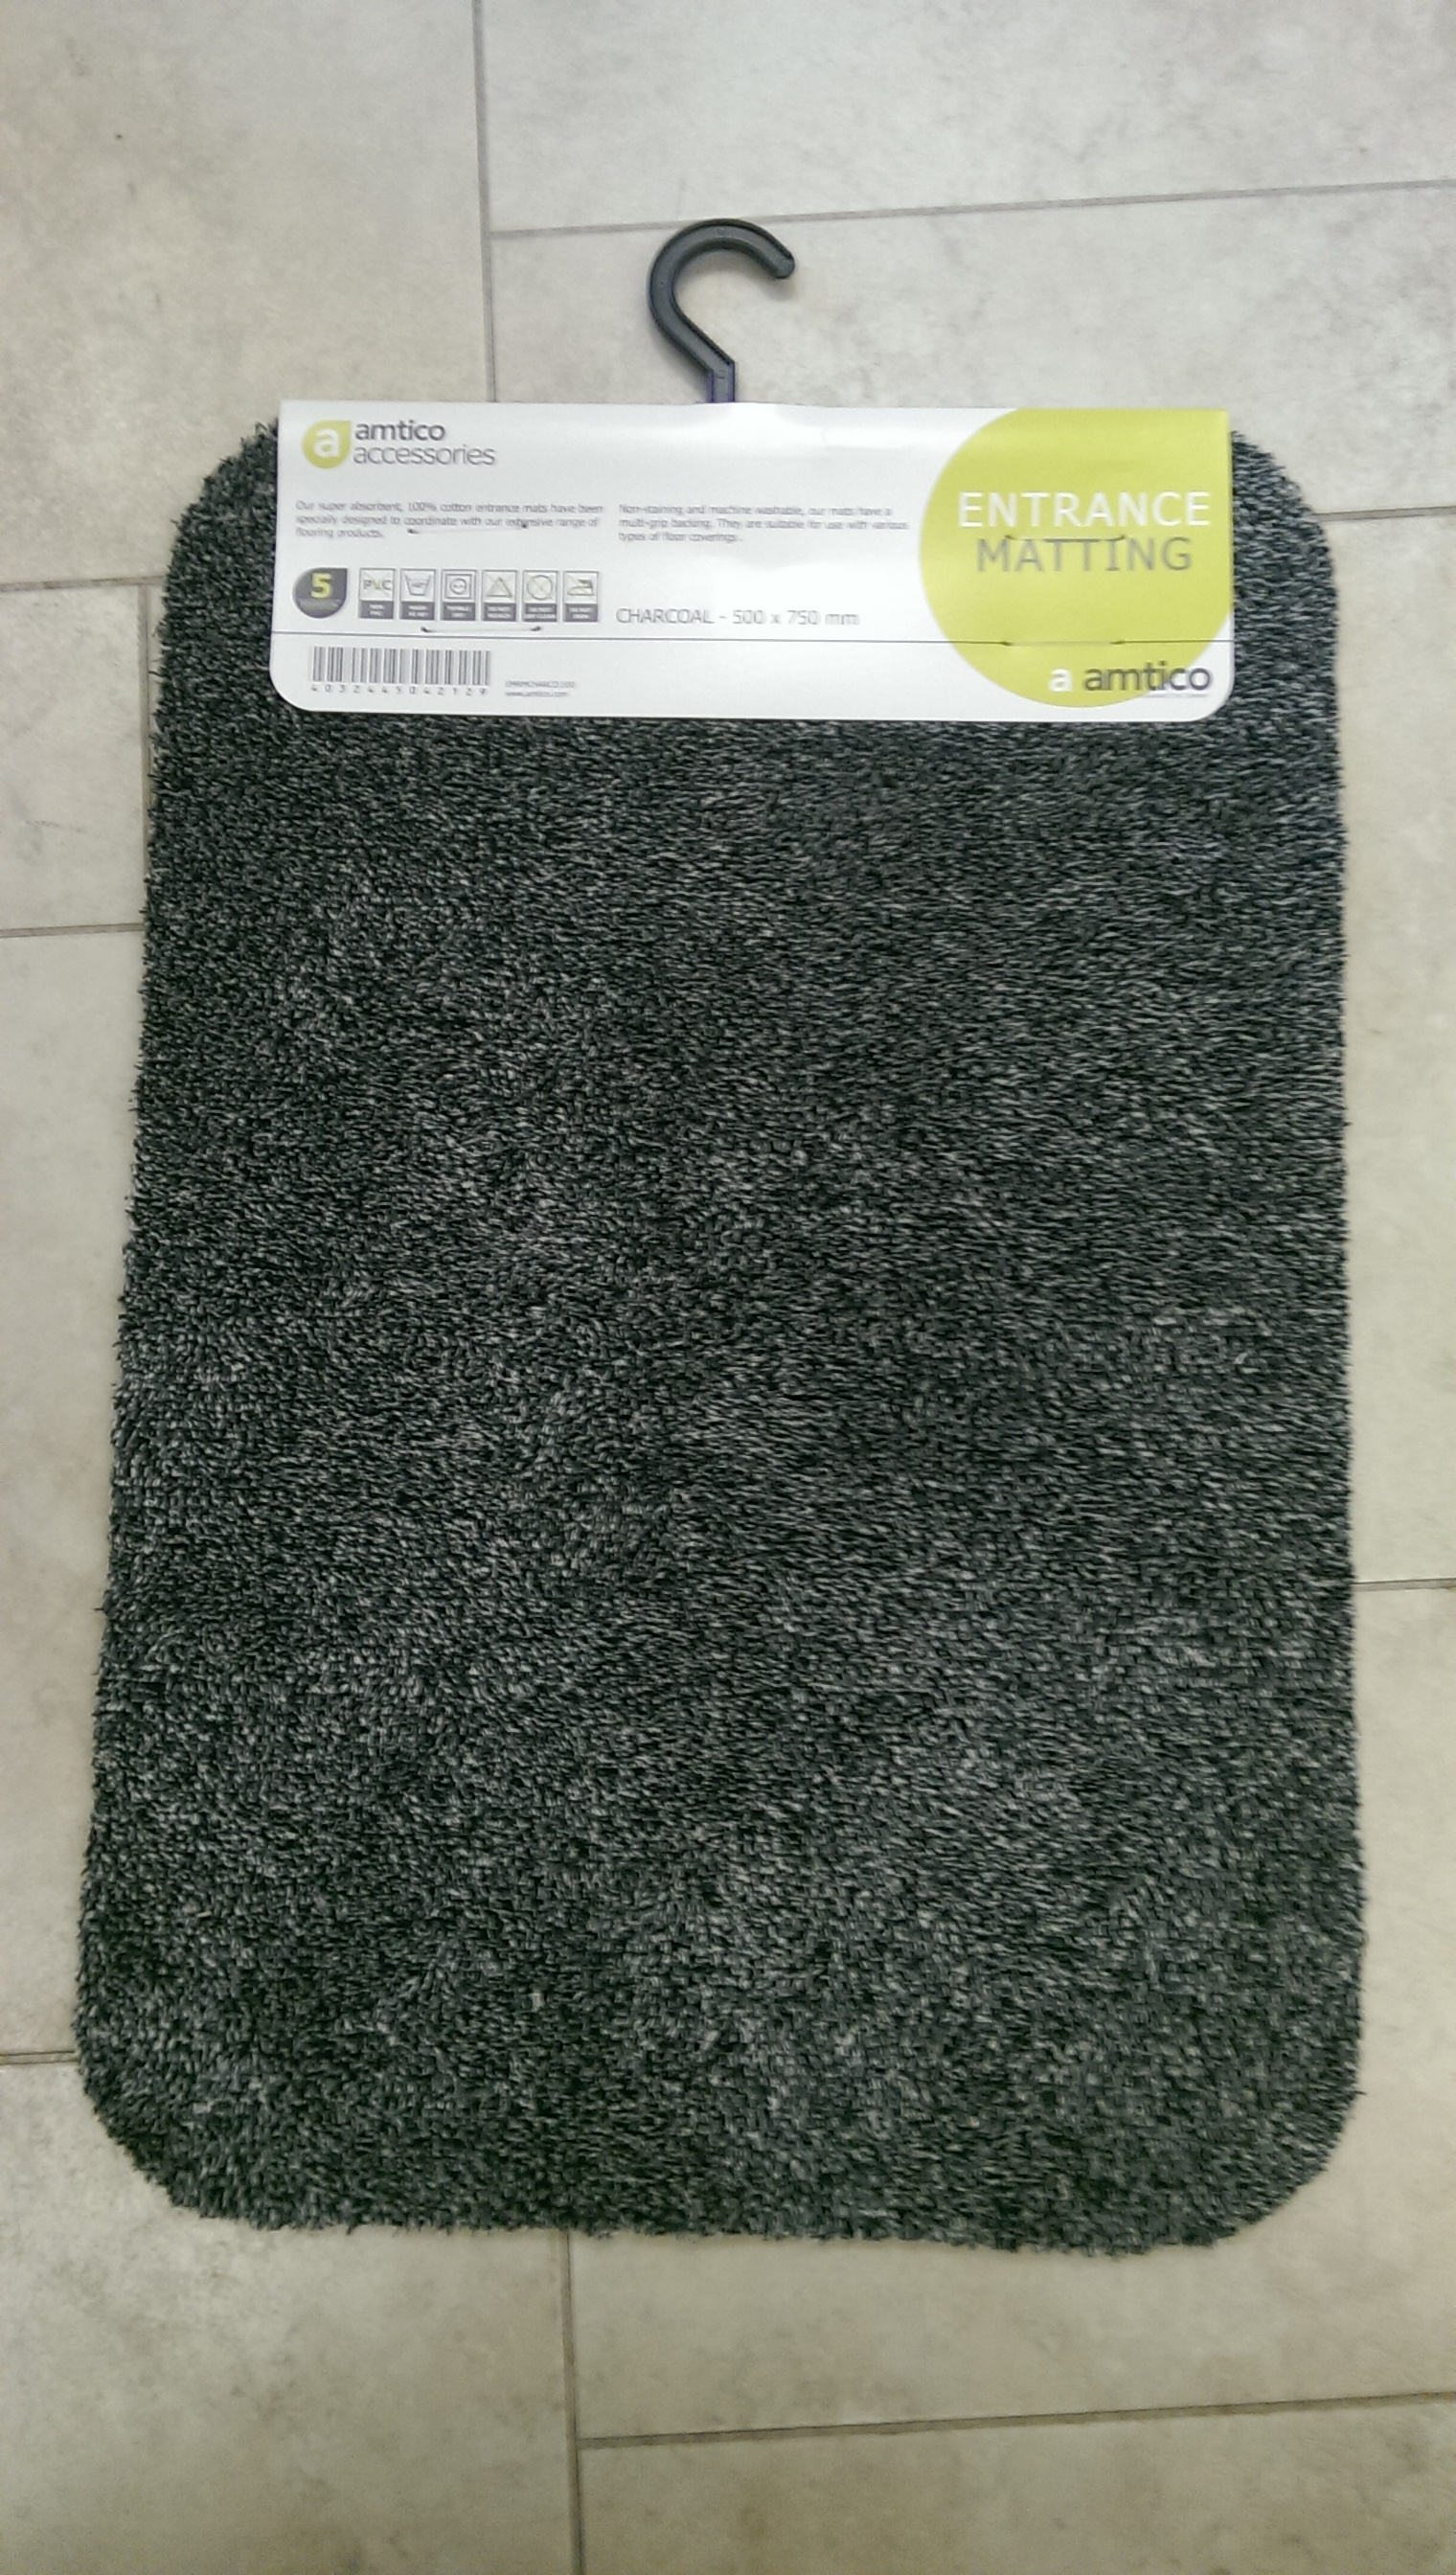 Carpet Floor Mats >> Amtico Floorcare Mat 500mm x 750mm